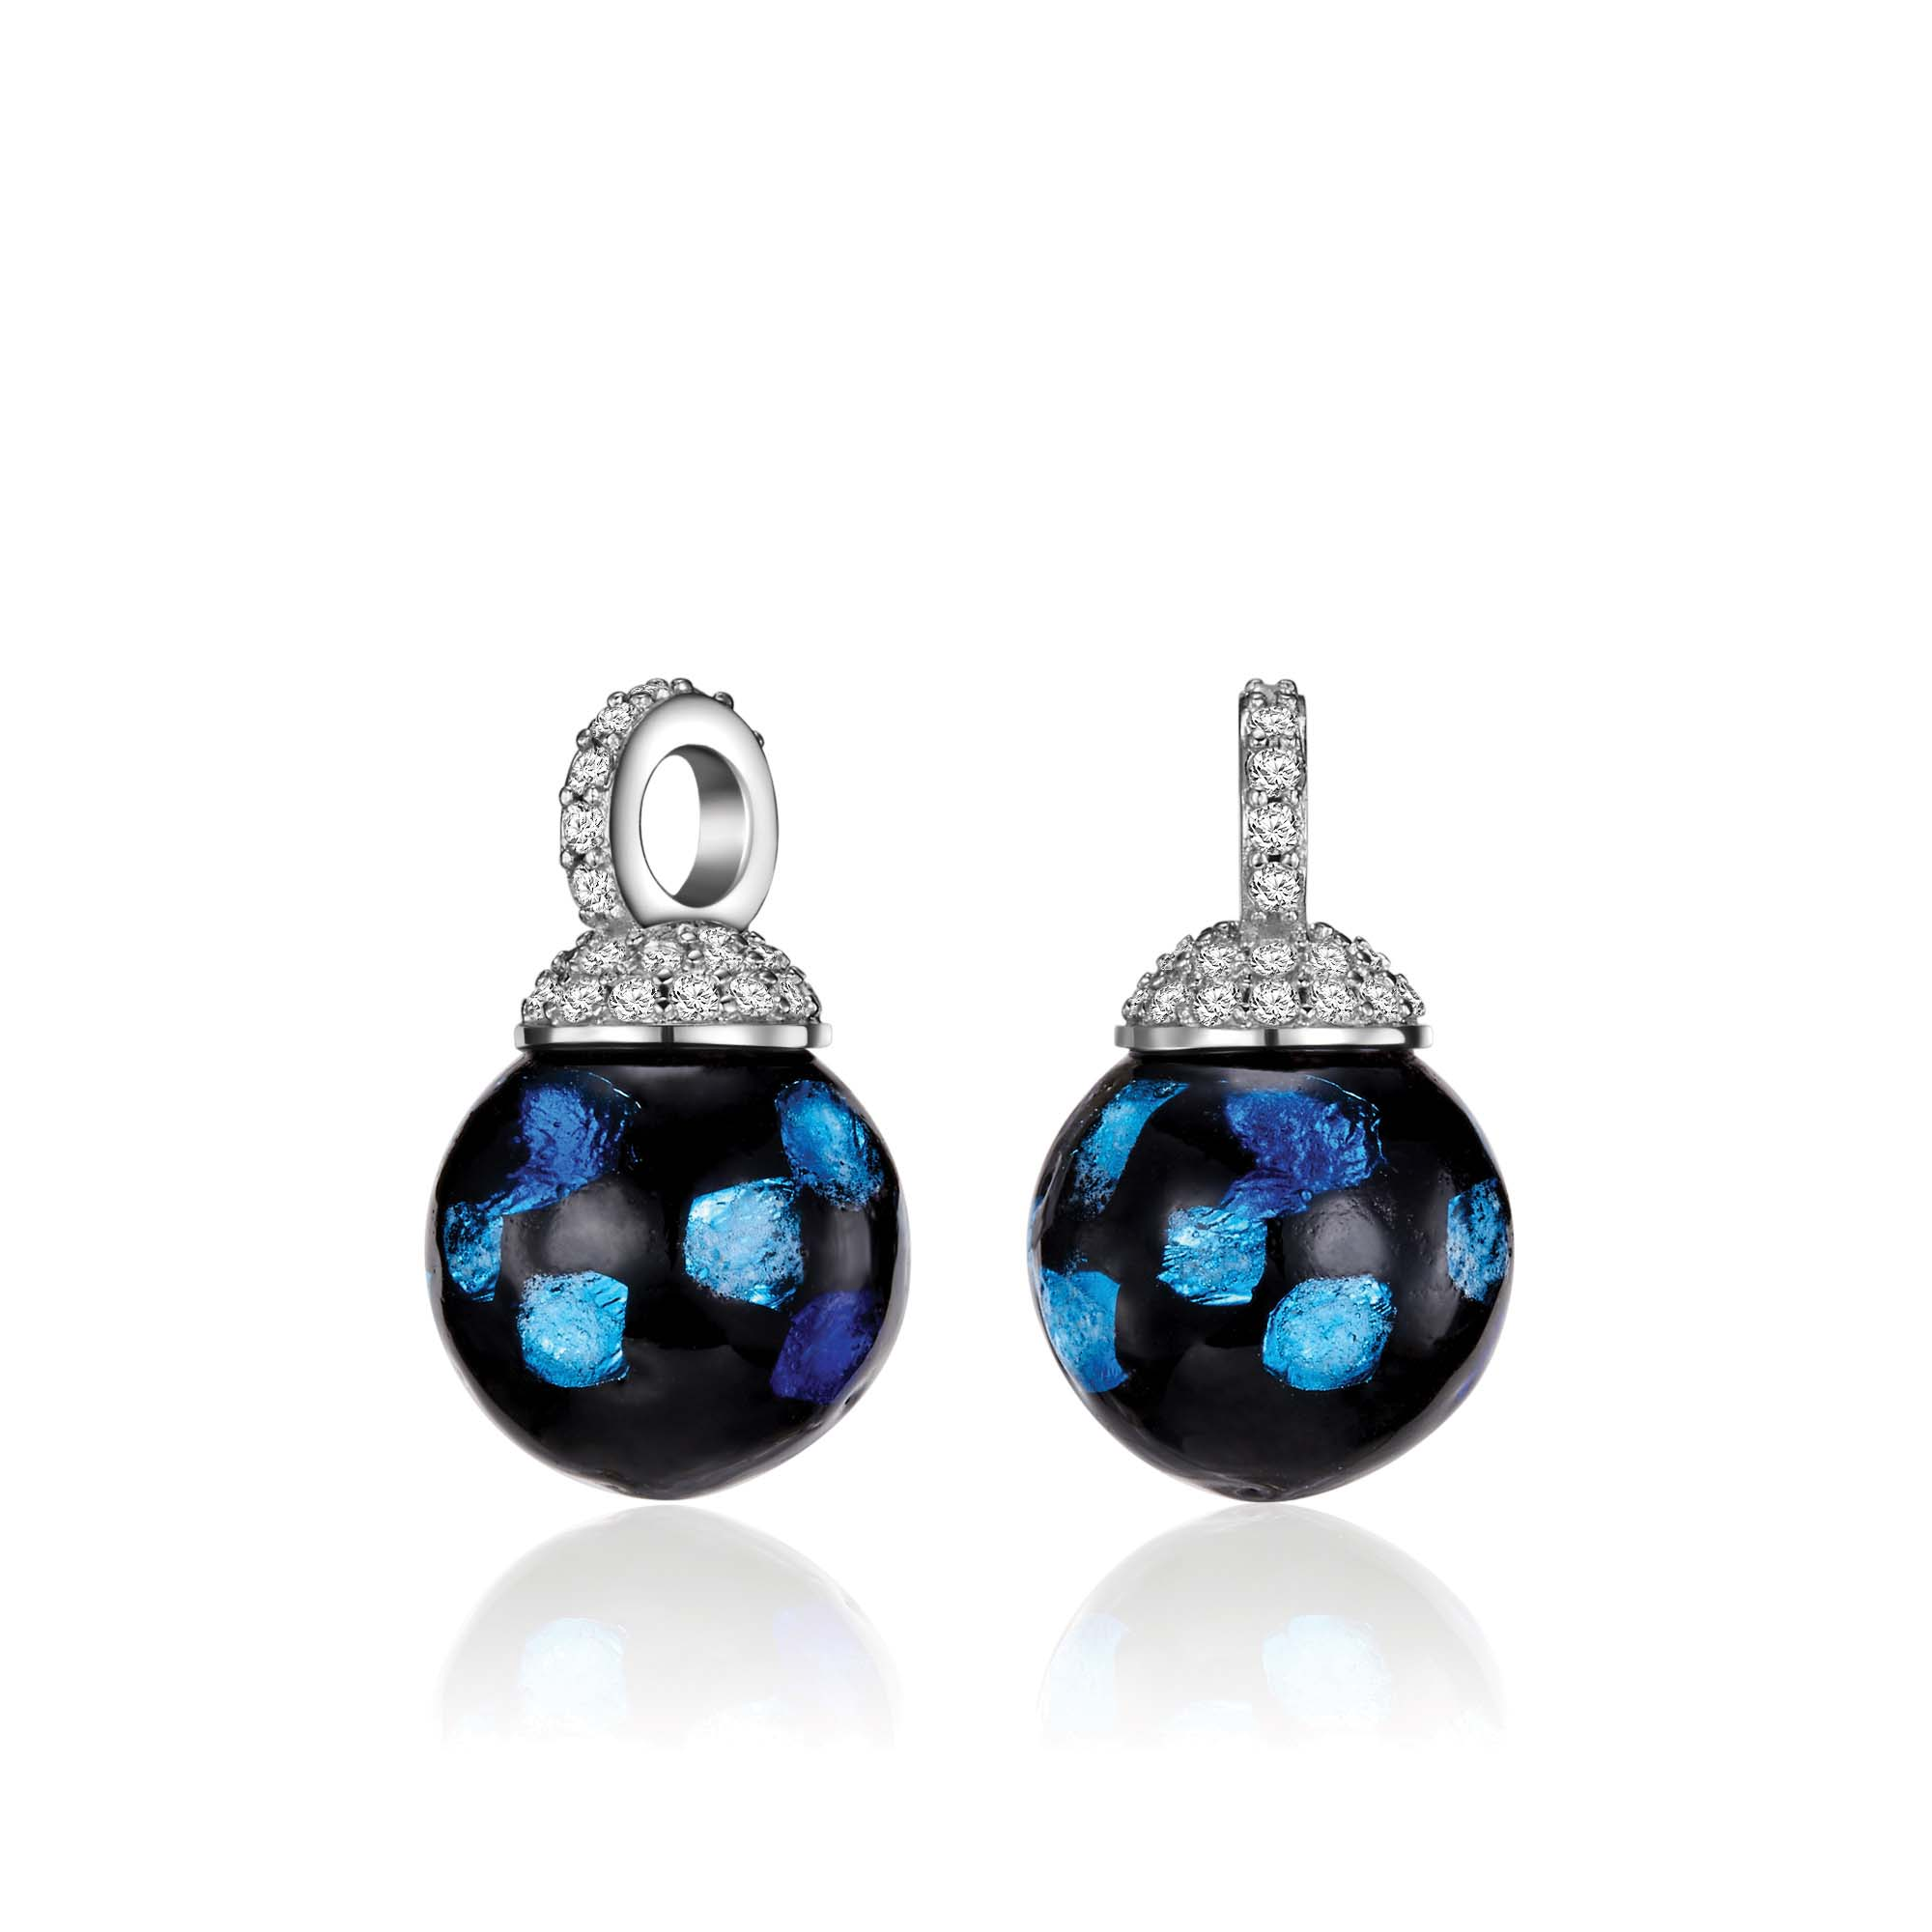 Kagi Blue Danube Drops Earcharms $99 only www.kagi.net